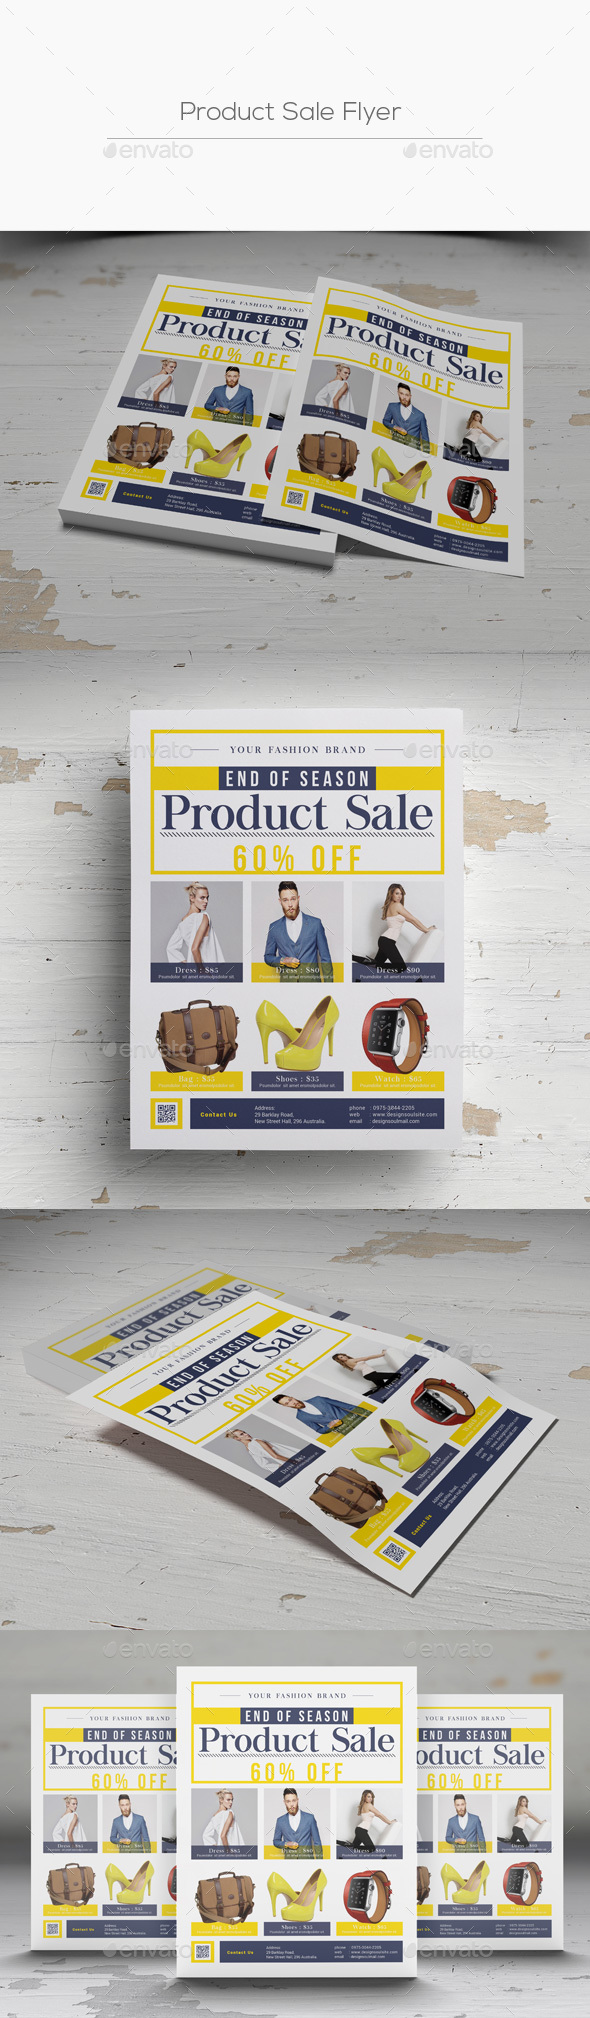 Product Sale Flyer - Commerce Flyers